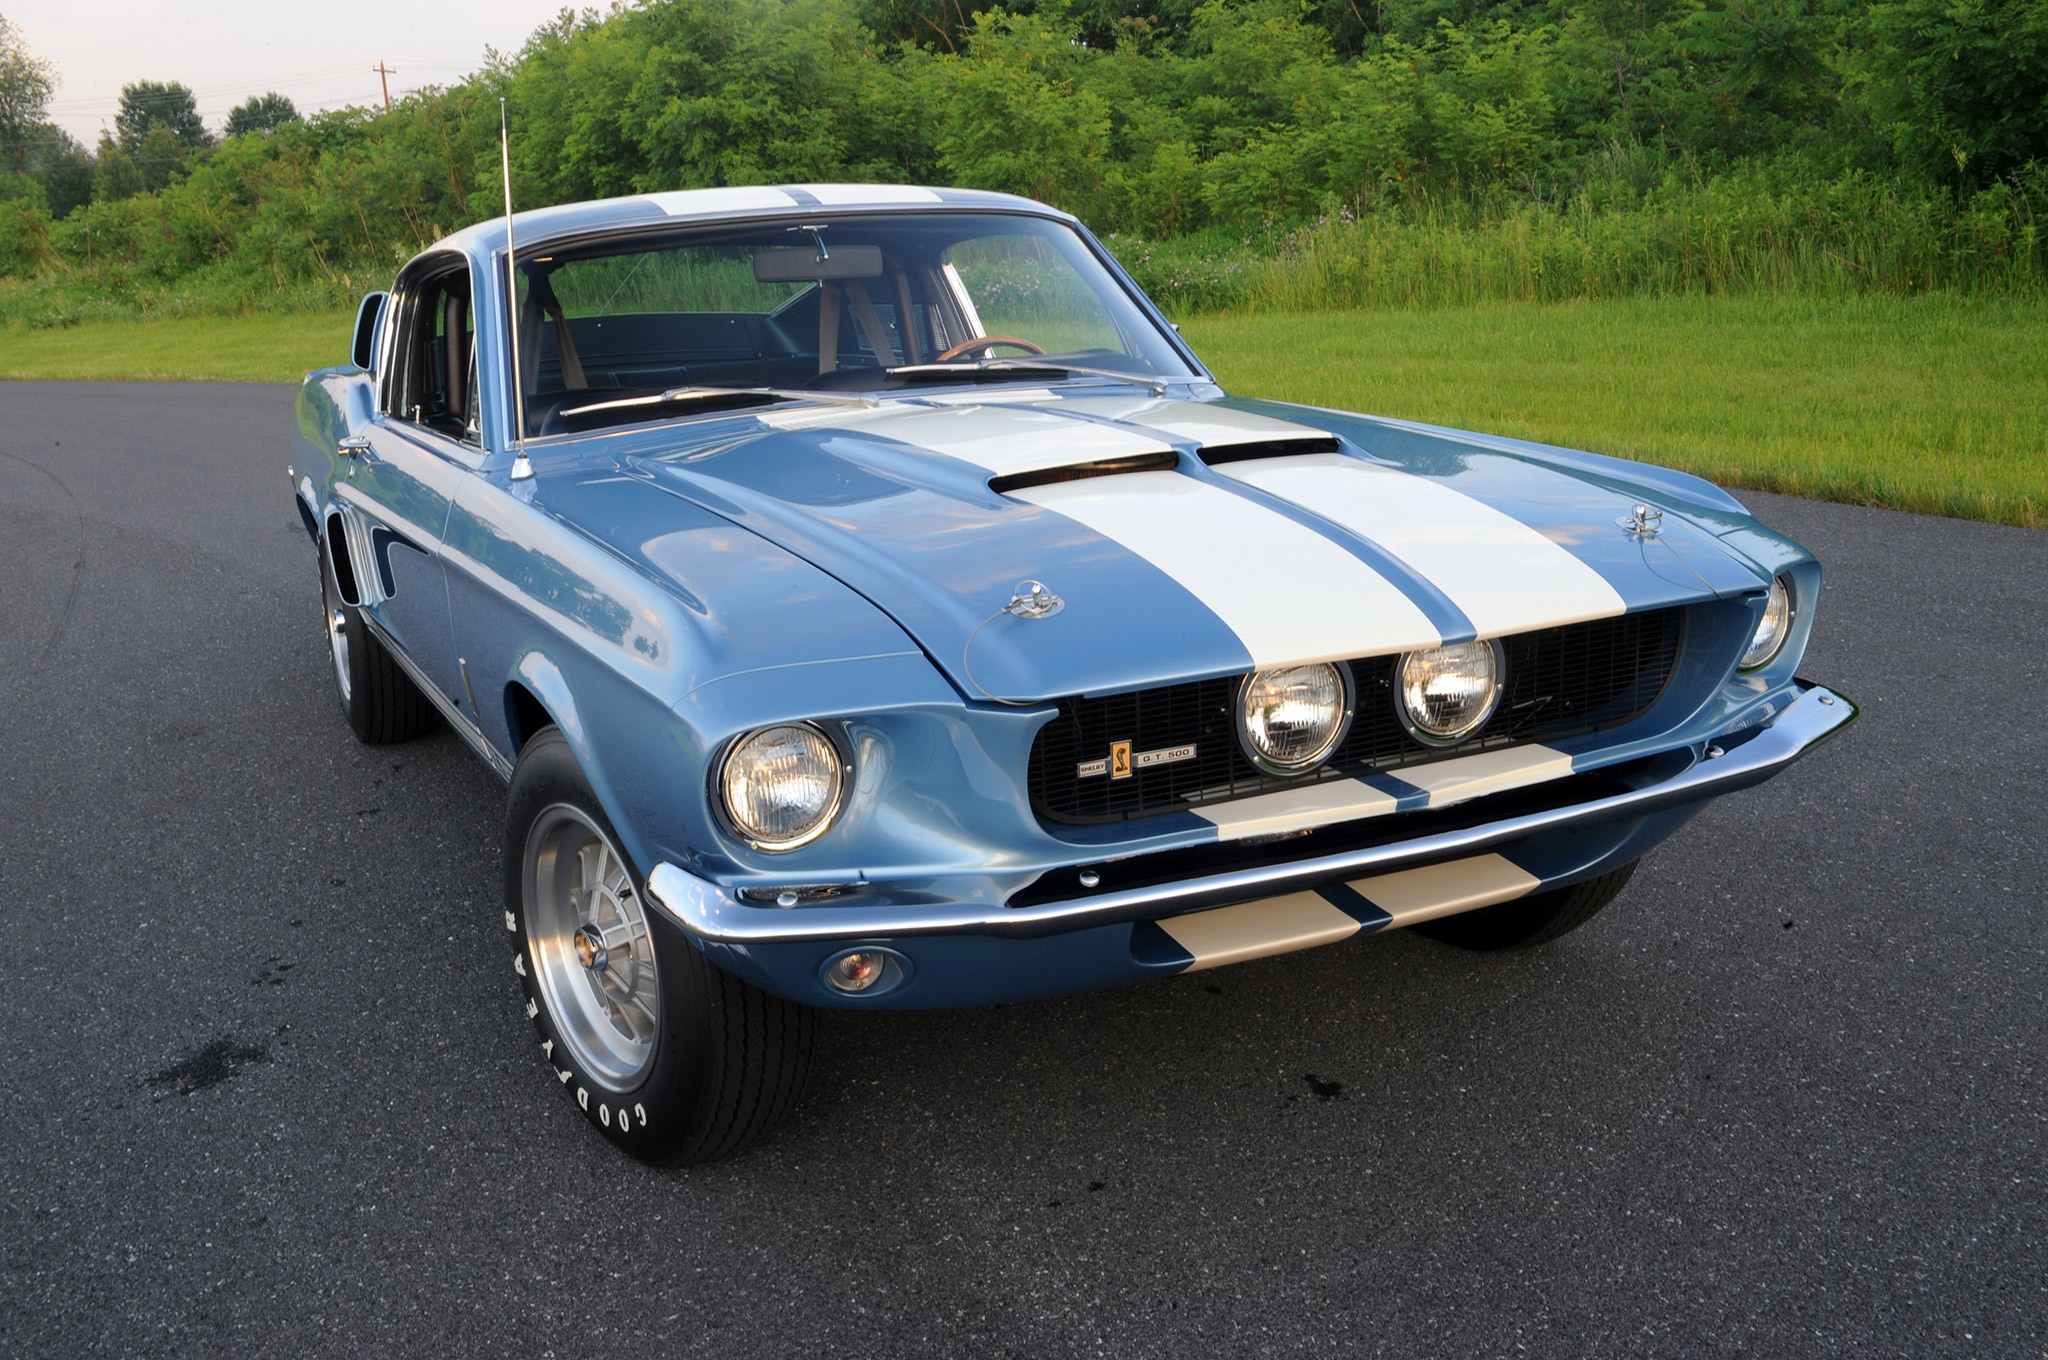 1967 Ford Mustang Shelby Gt500 Brittany Blue Grille - Photo